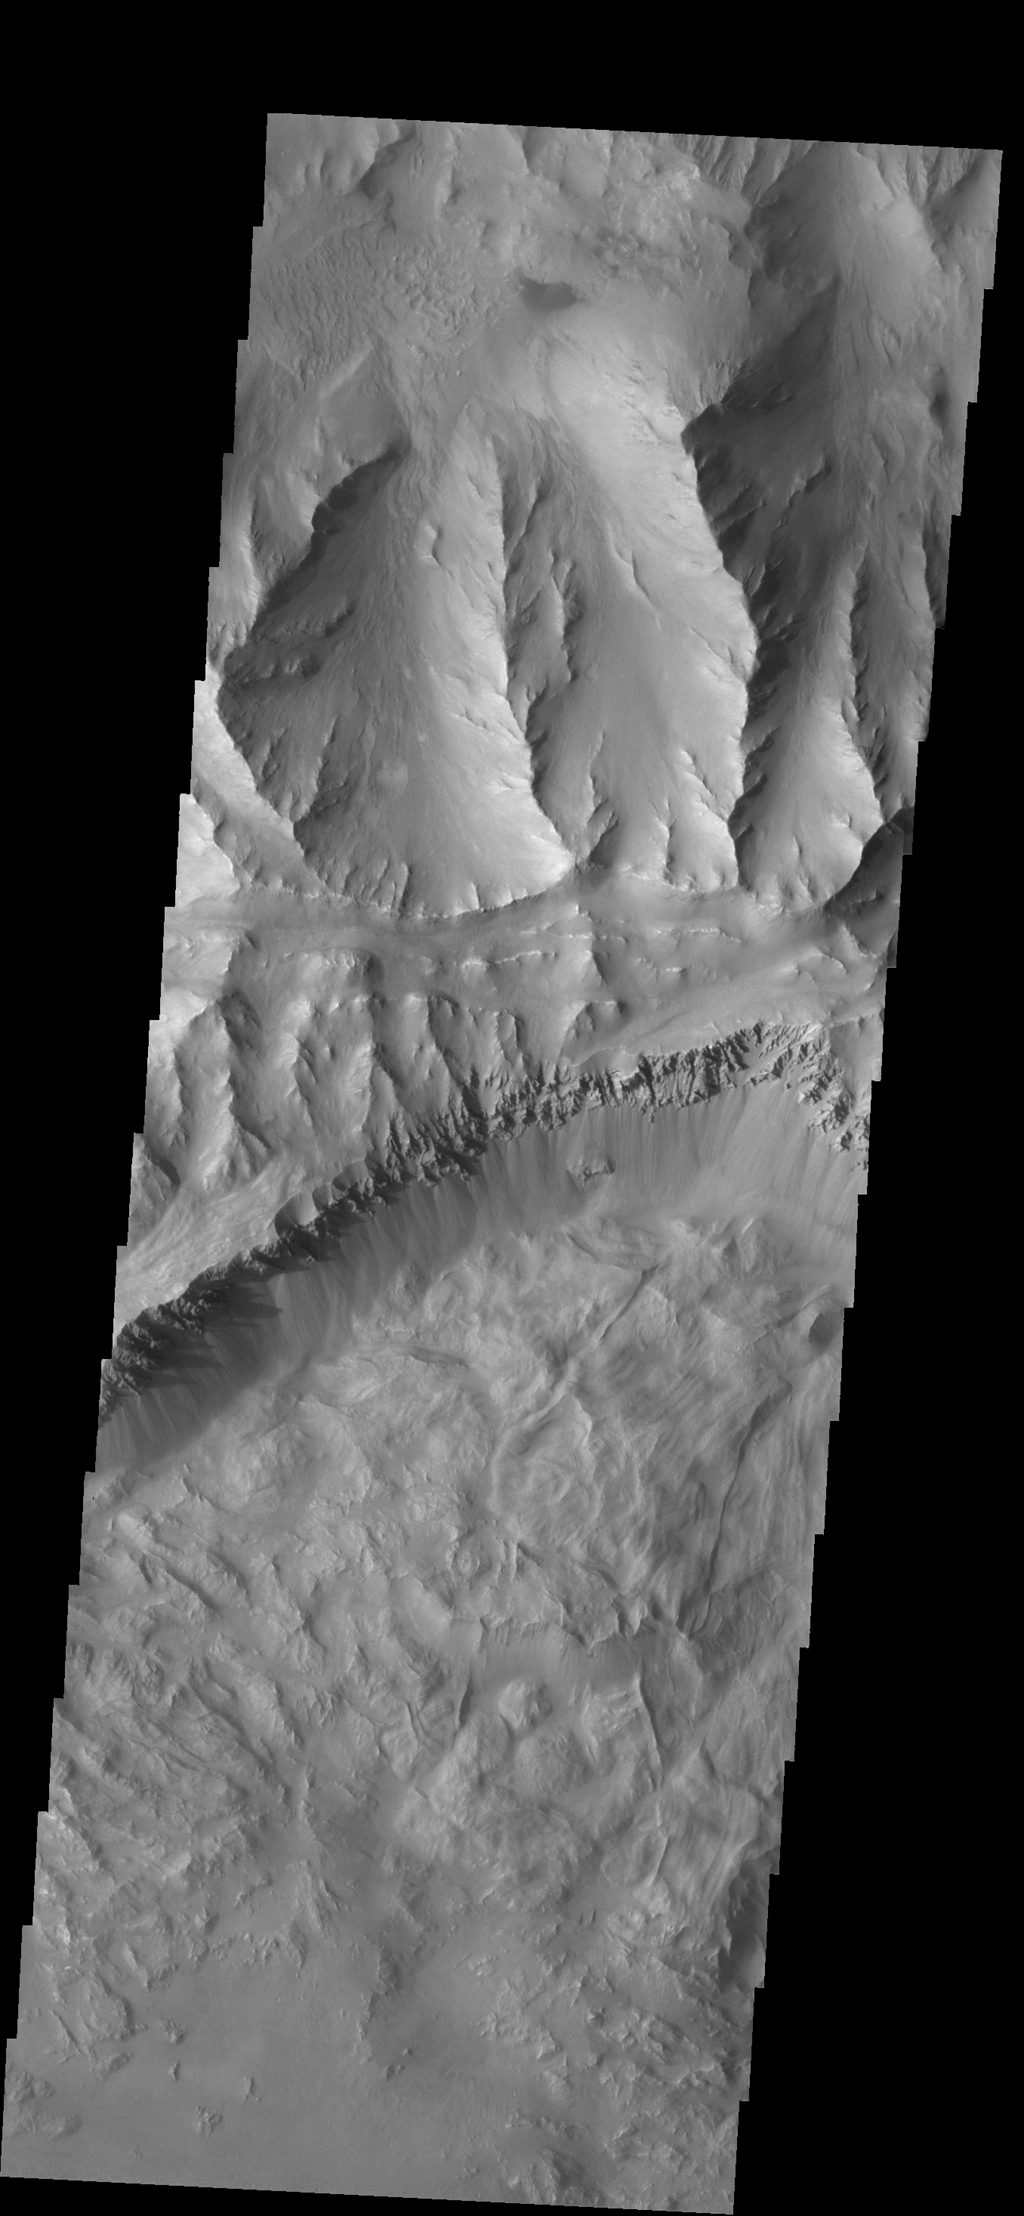 This image from NASA's 2001 Mars Odyssey spacecraft shows part of Coprates Chasma, which is just one part of the extensive Valles Marineris canyon system.